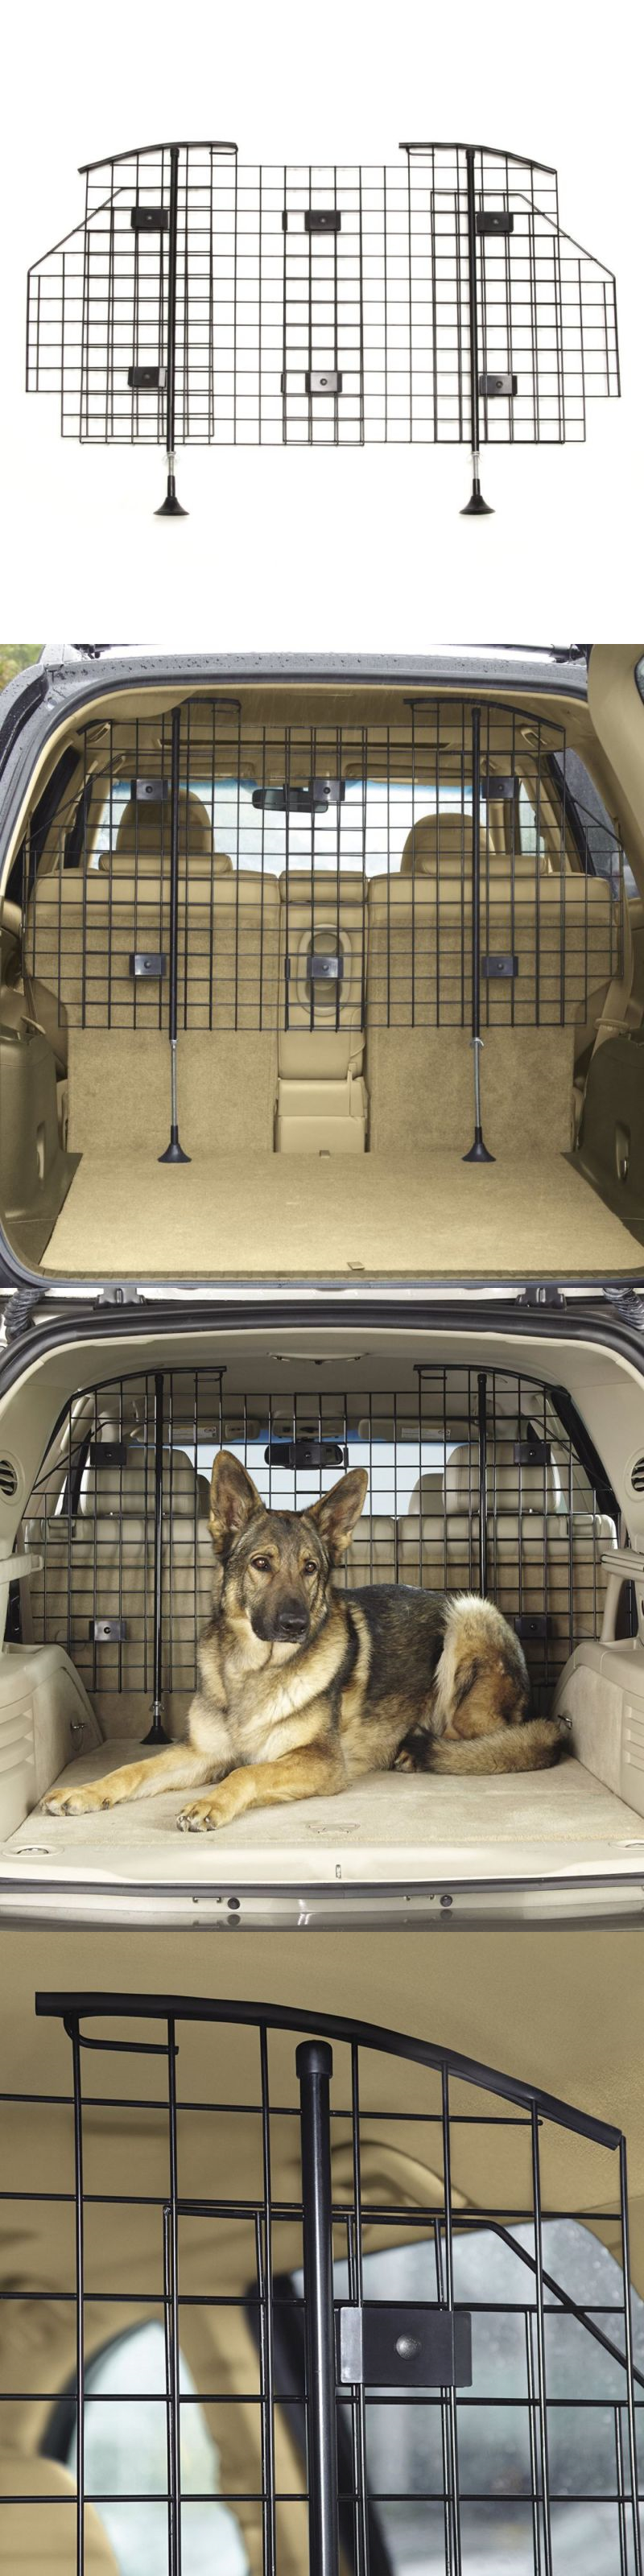 Car seats and barriers guardian gear grid vehicle barrier